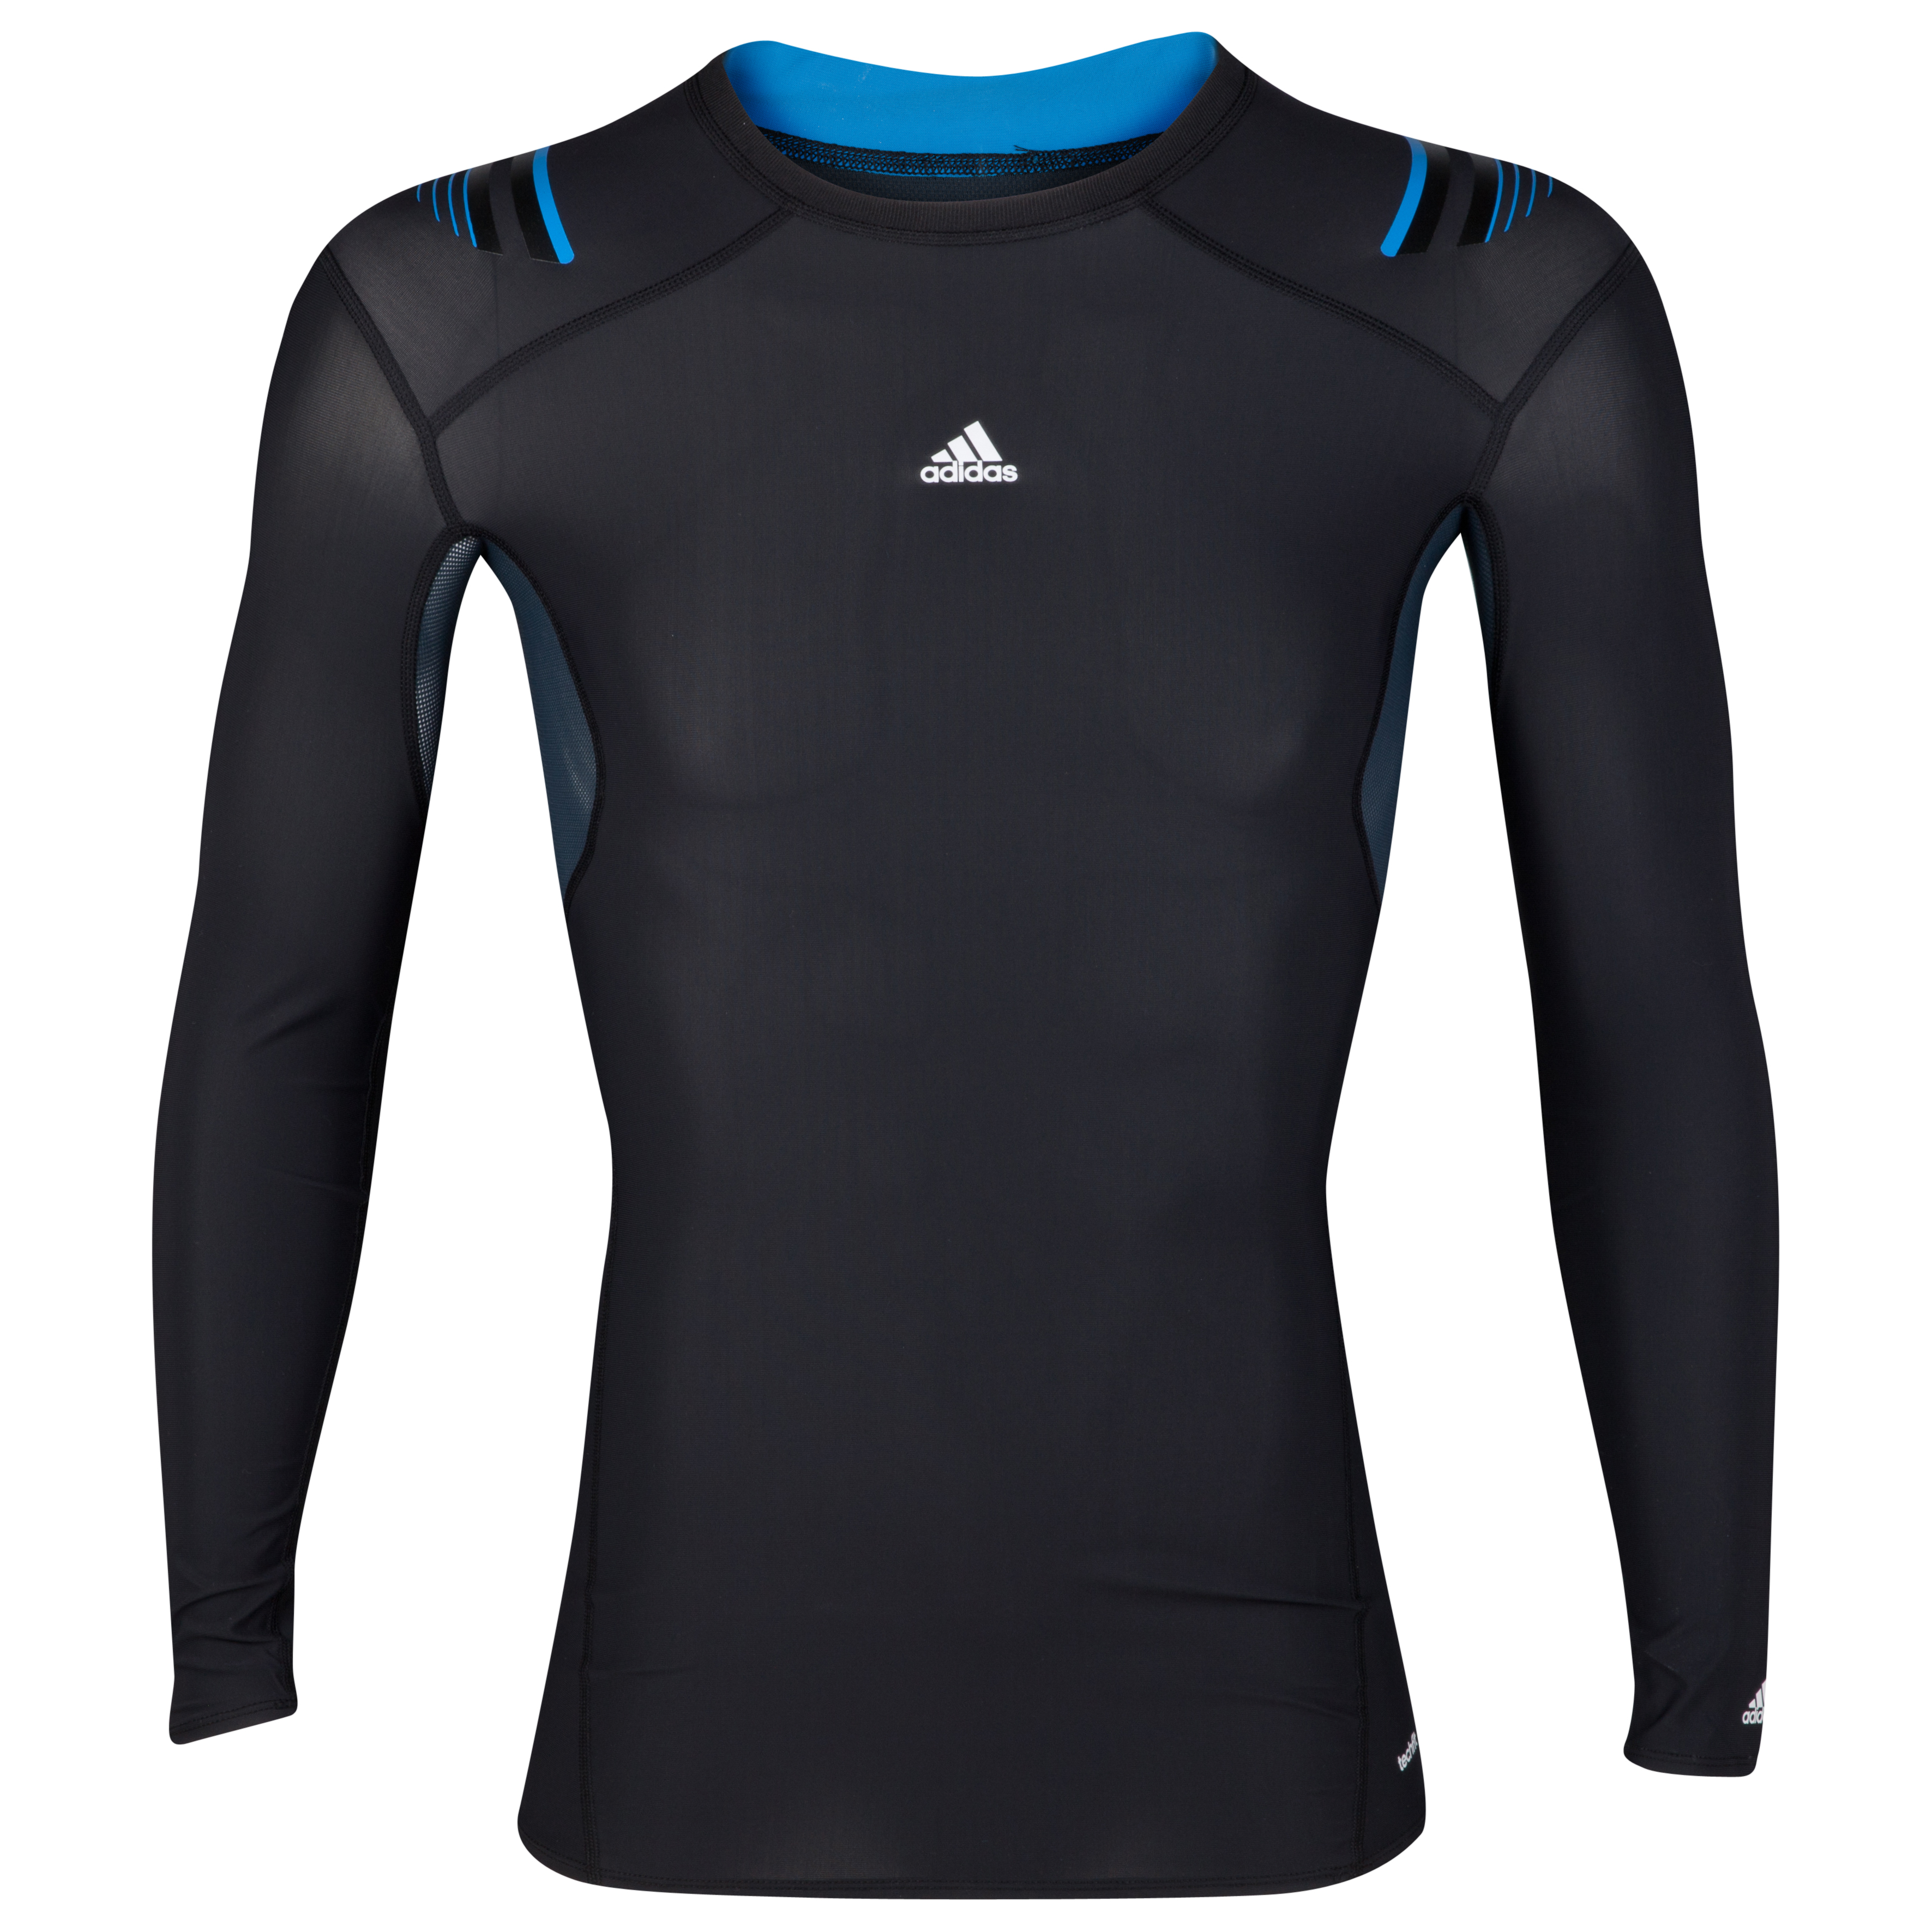 adidas TechFit PowerWeb Baselayer Top - Long Sleeve - Black